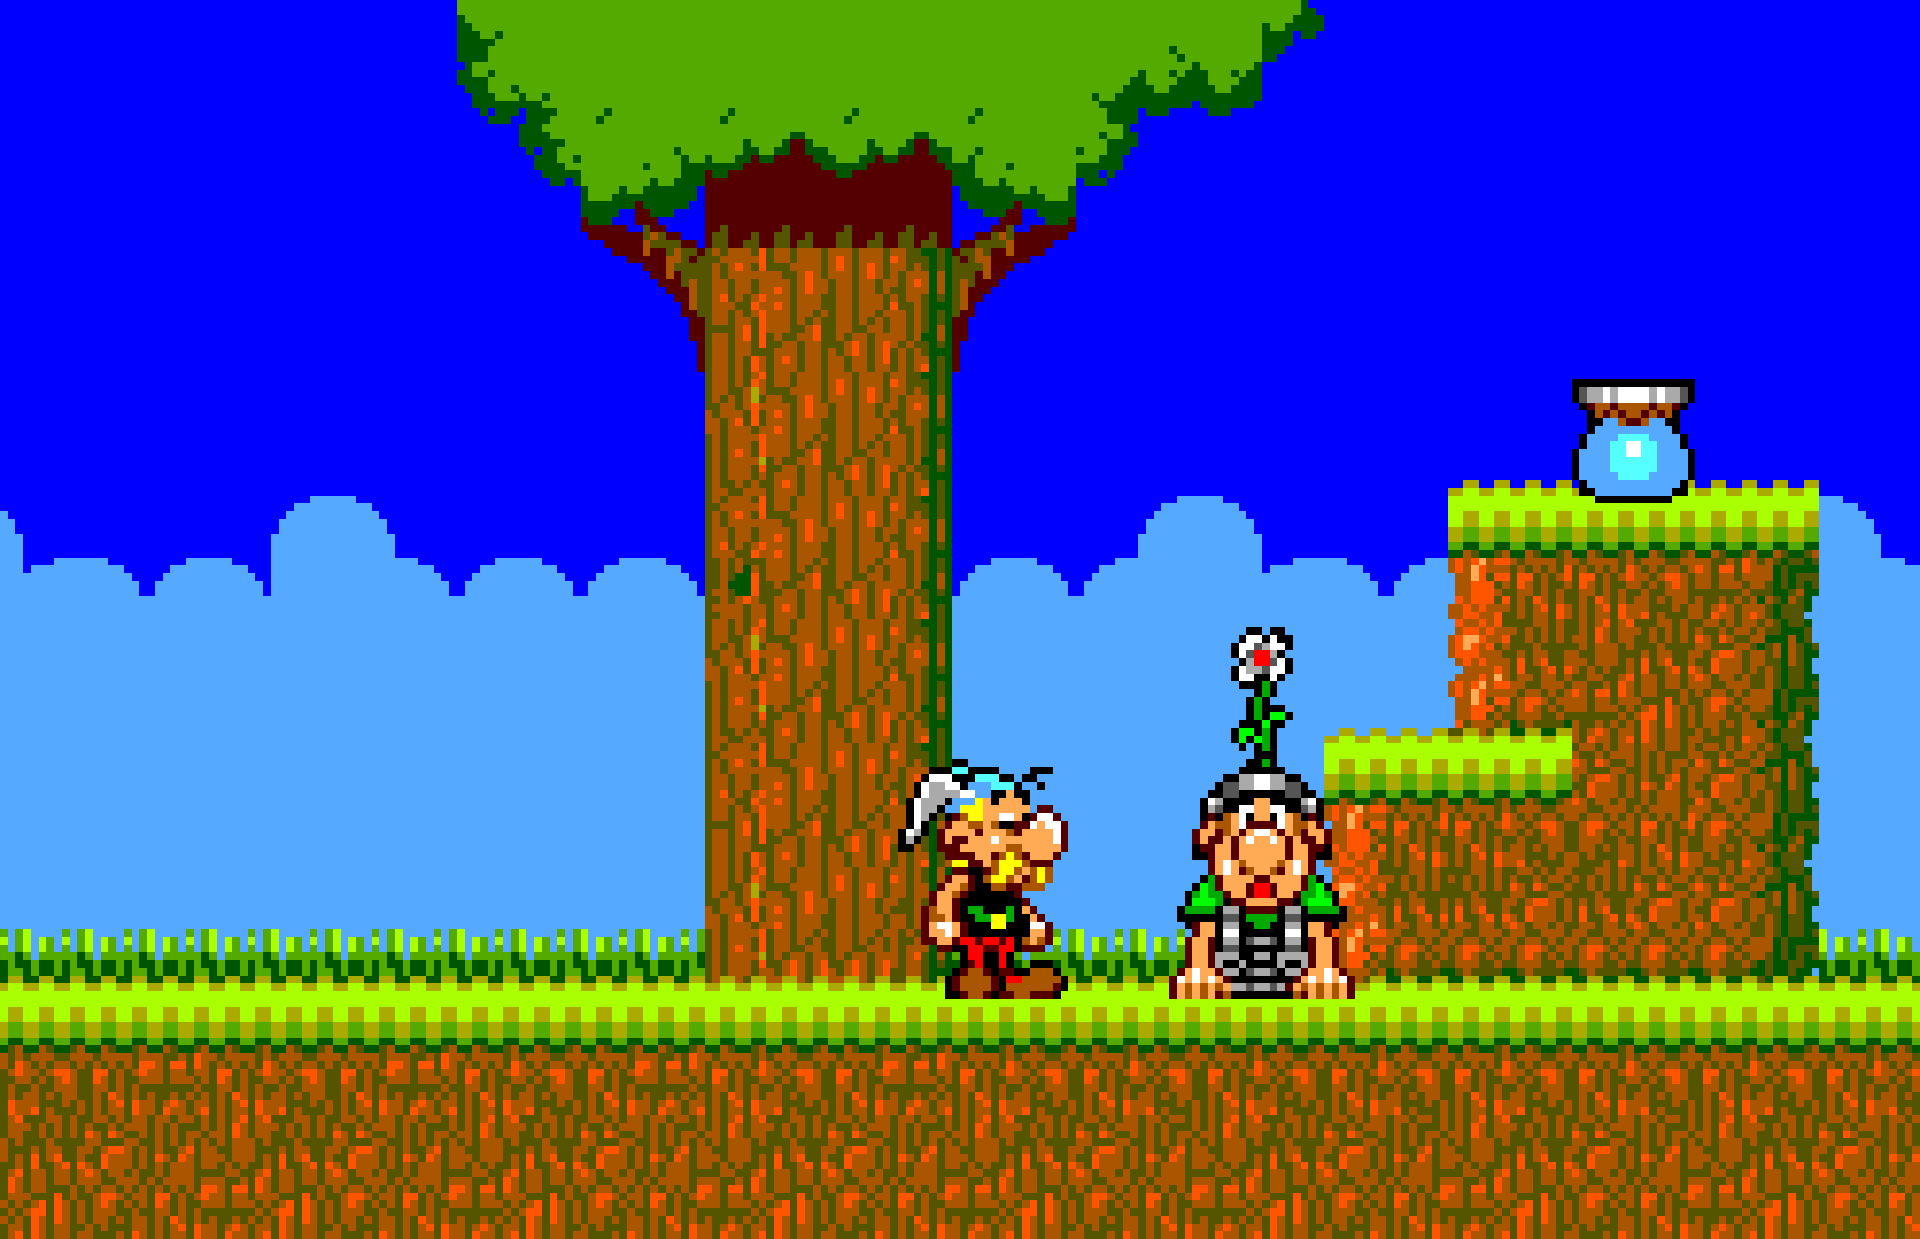 Asterix Gameplay 1 Classic Sega Master System Games - Which Was Your Favourite?